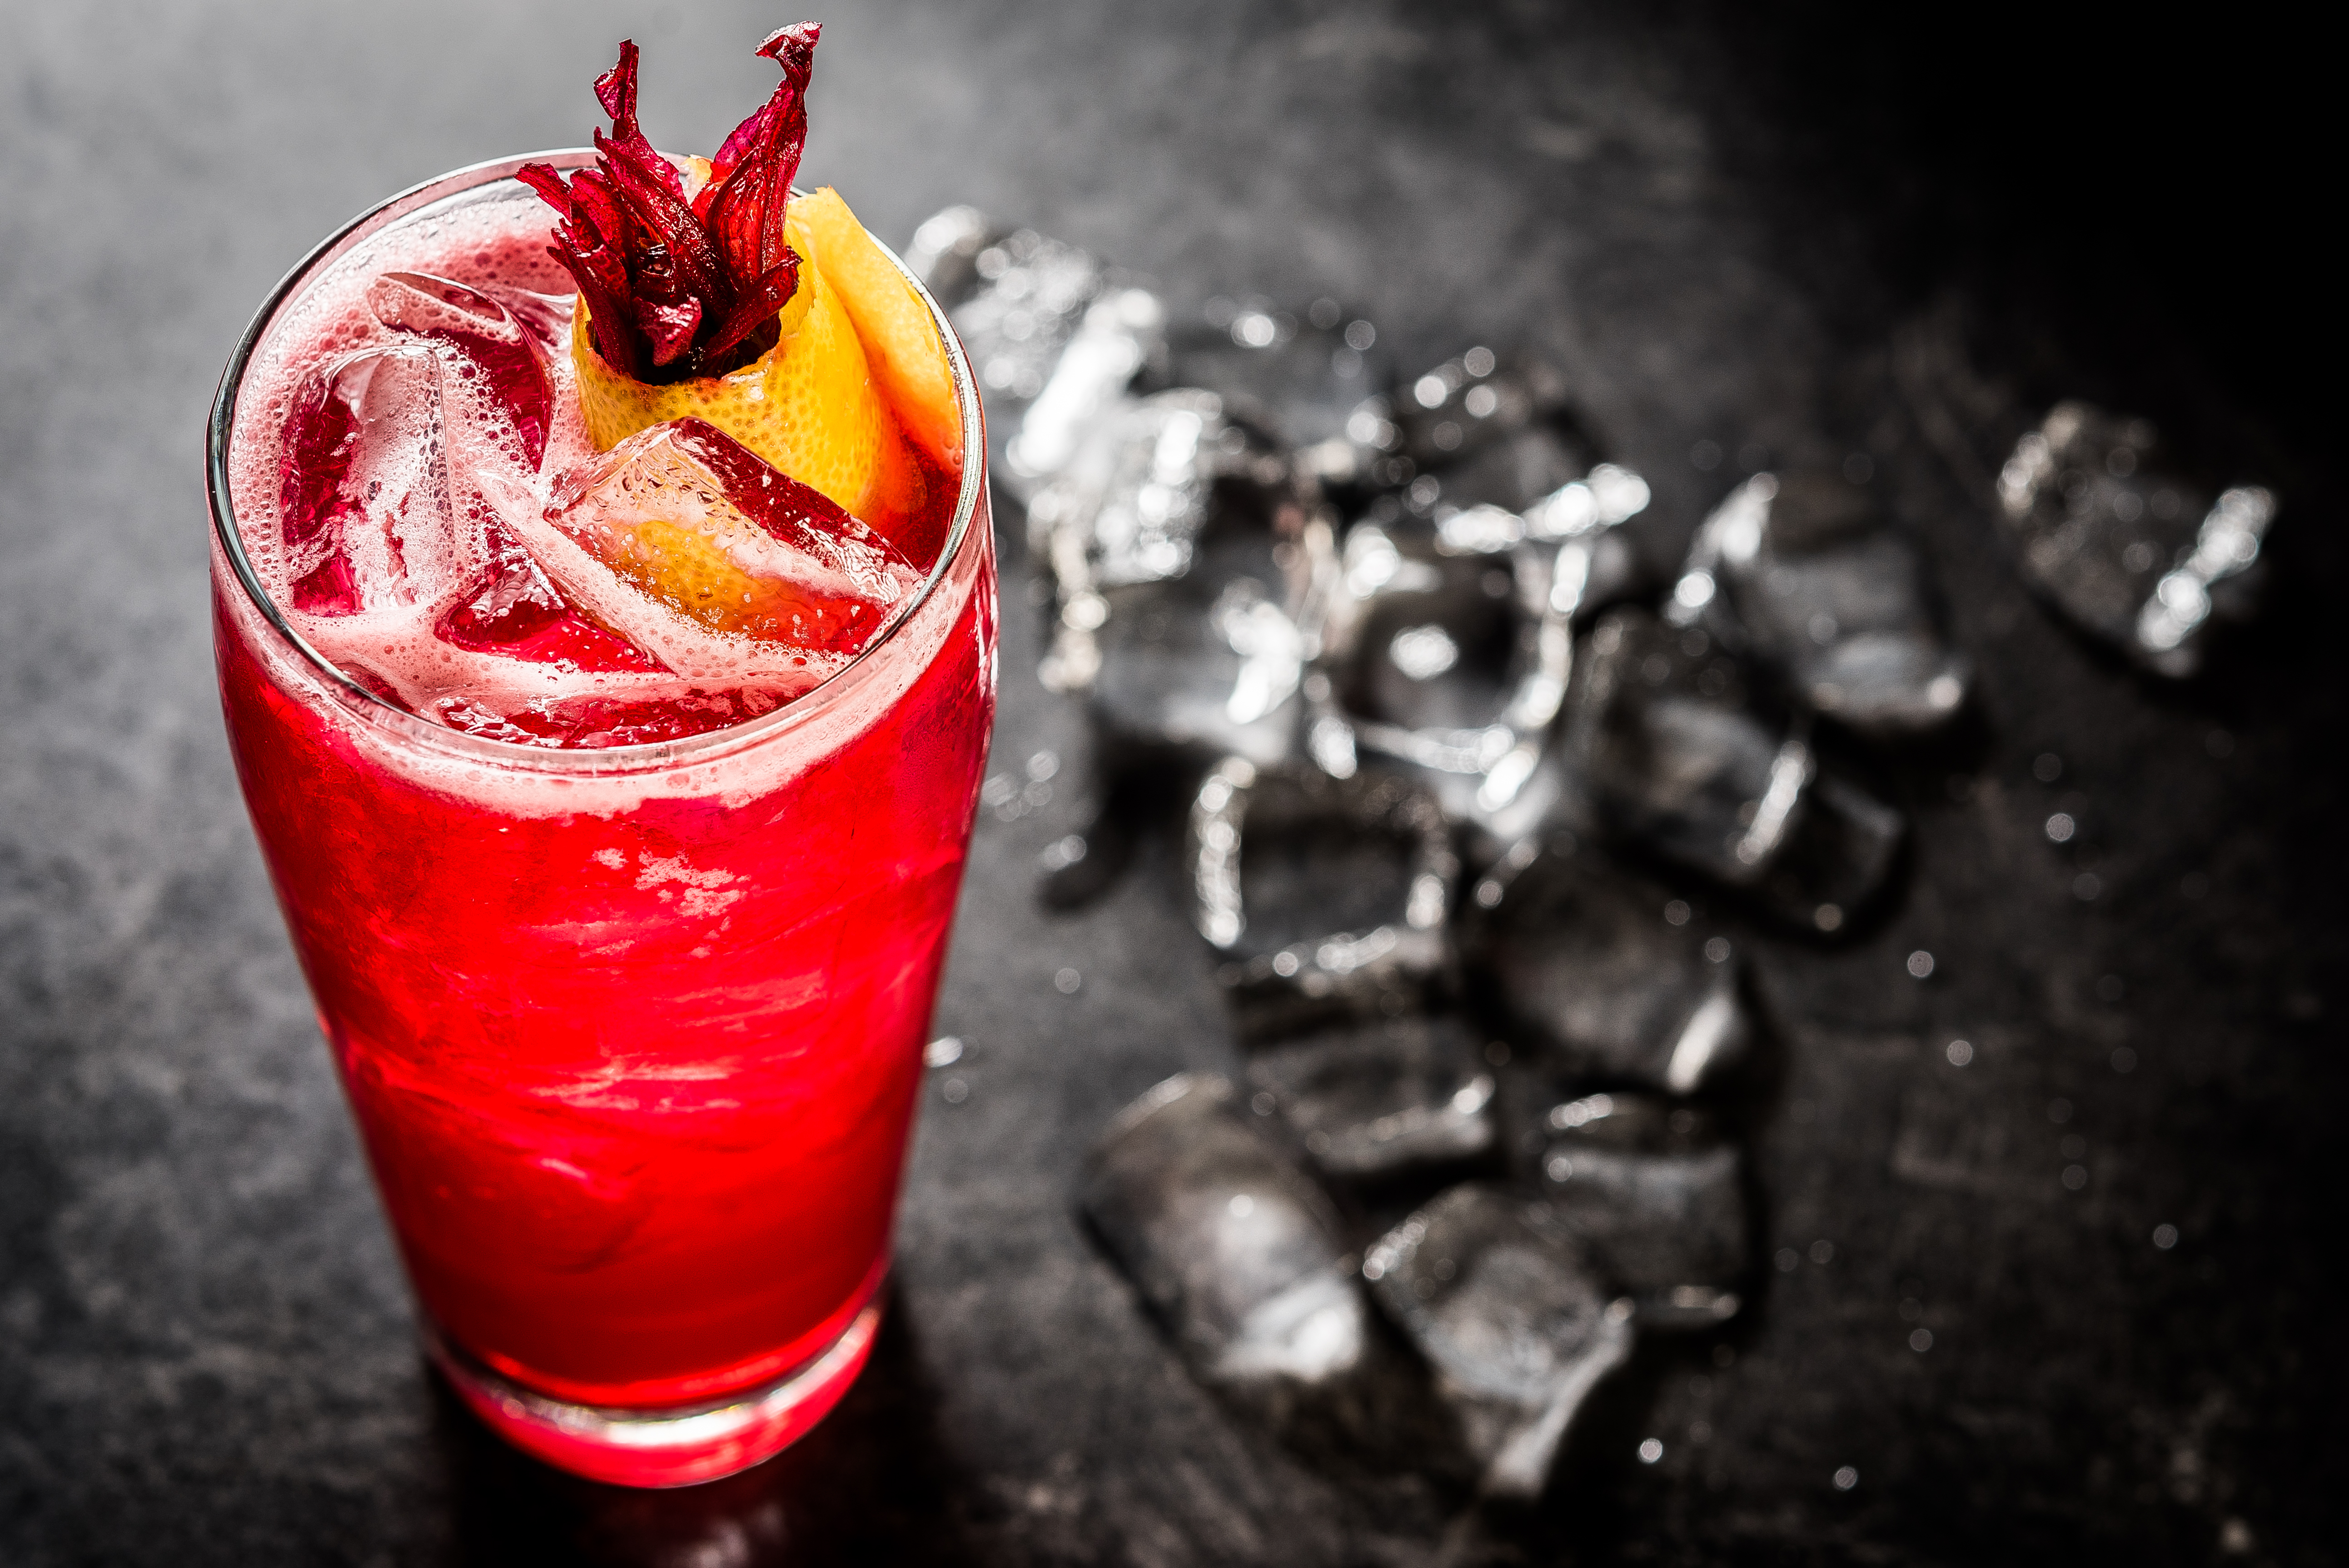 A hibiscus vodka cocktail at the new Guapo's in Georgetown.{ }(Image: Rey Lopez)